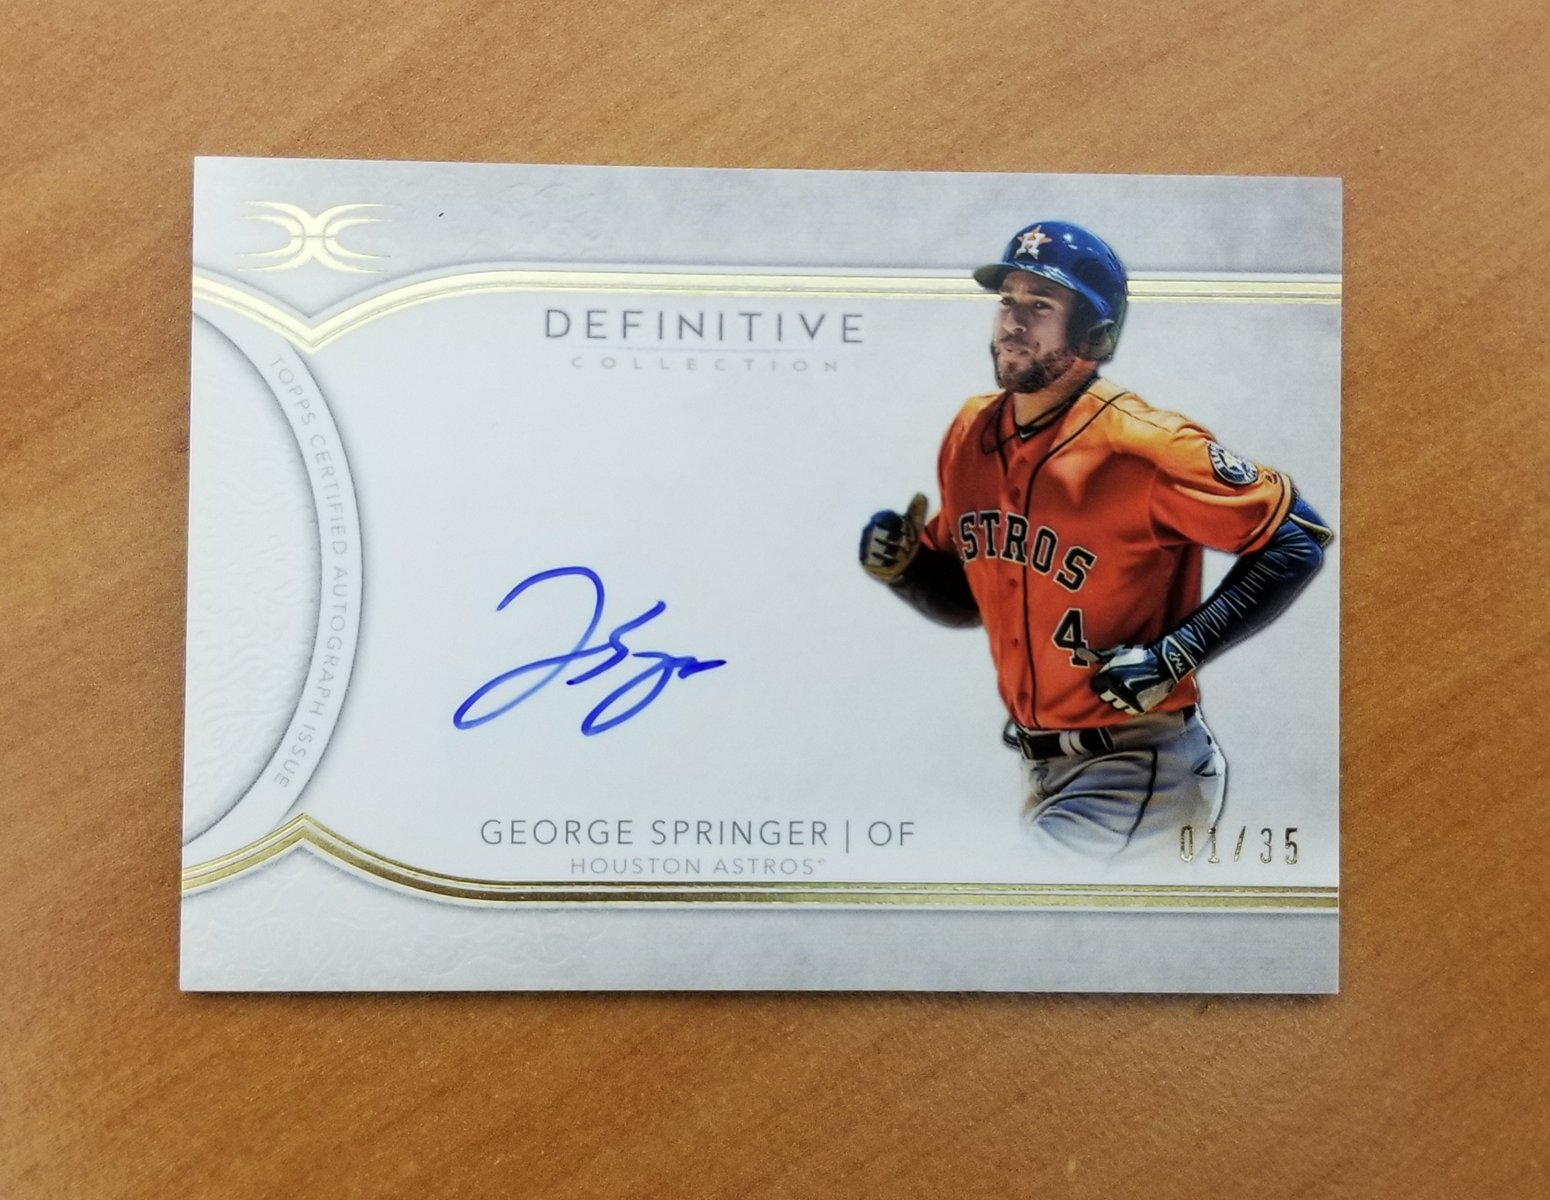 George Springer turns 29 today!     RT and you can win one of these autographed #MLBCards. https://t.co/EUZUShXEOO